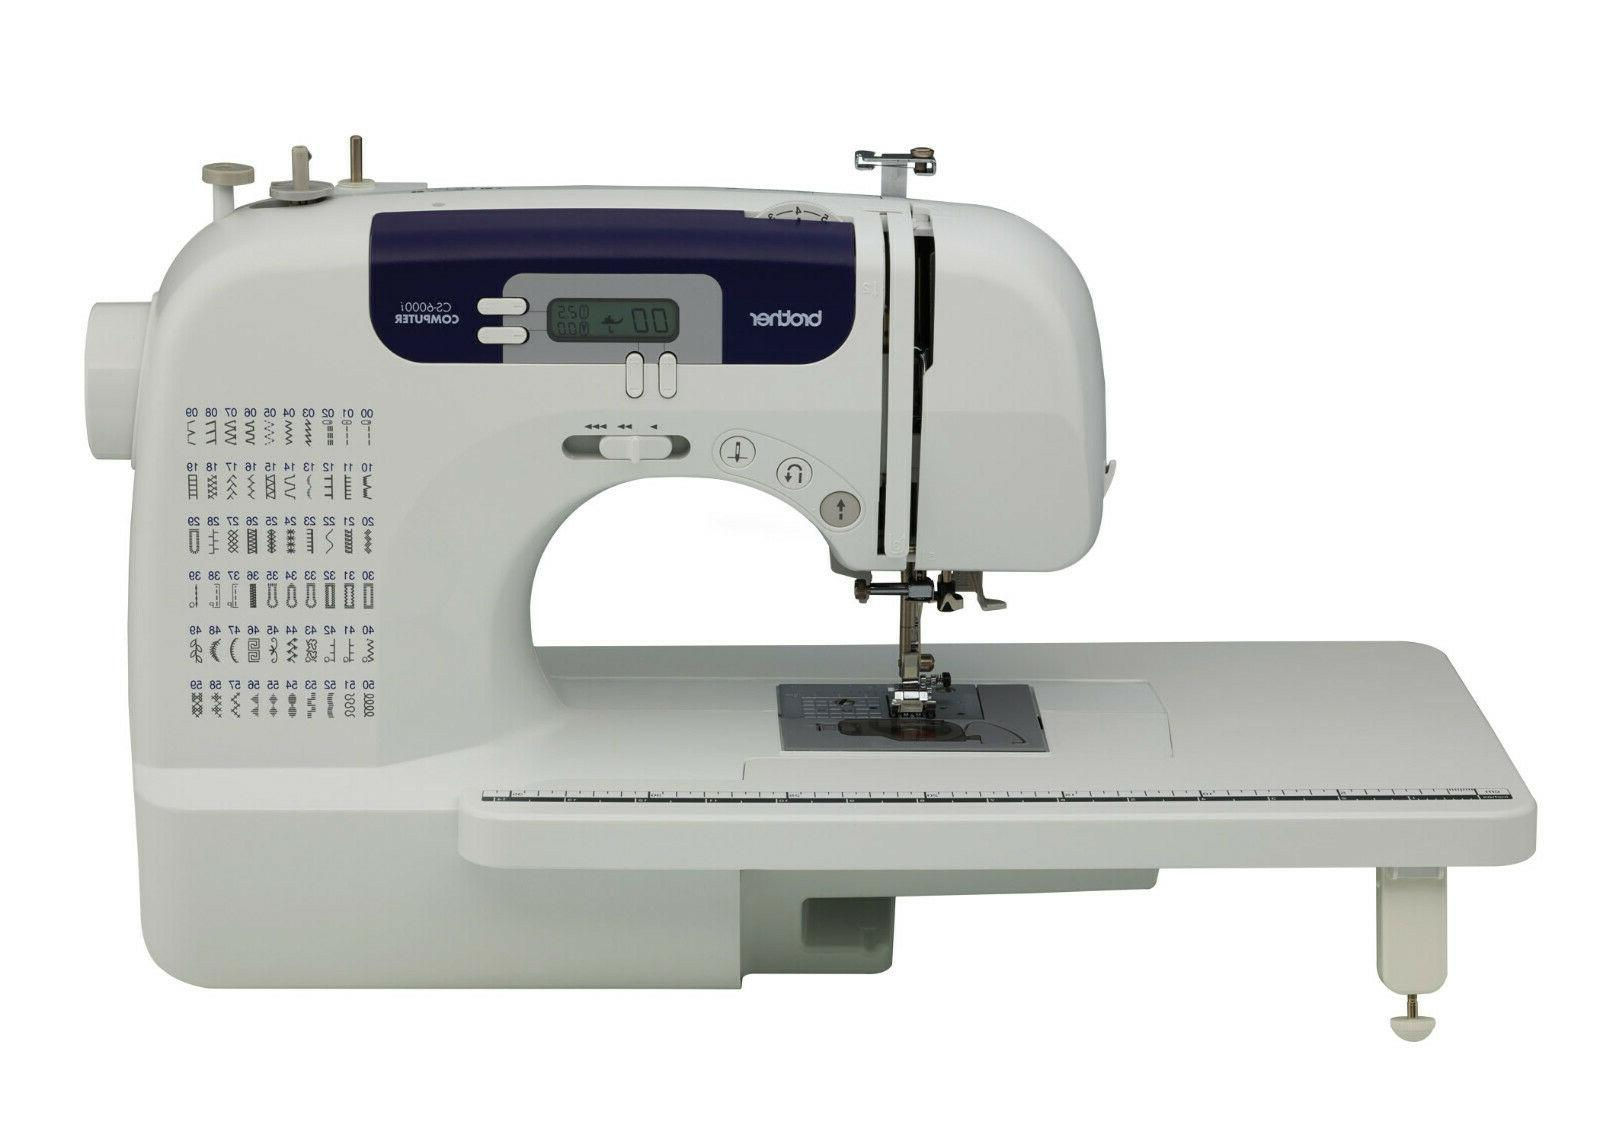 cs6000i feature rich computerized sewing machine